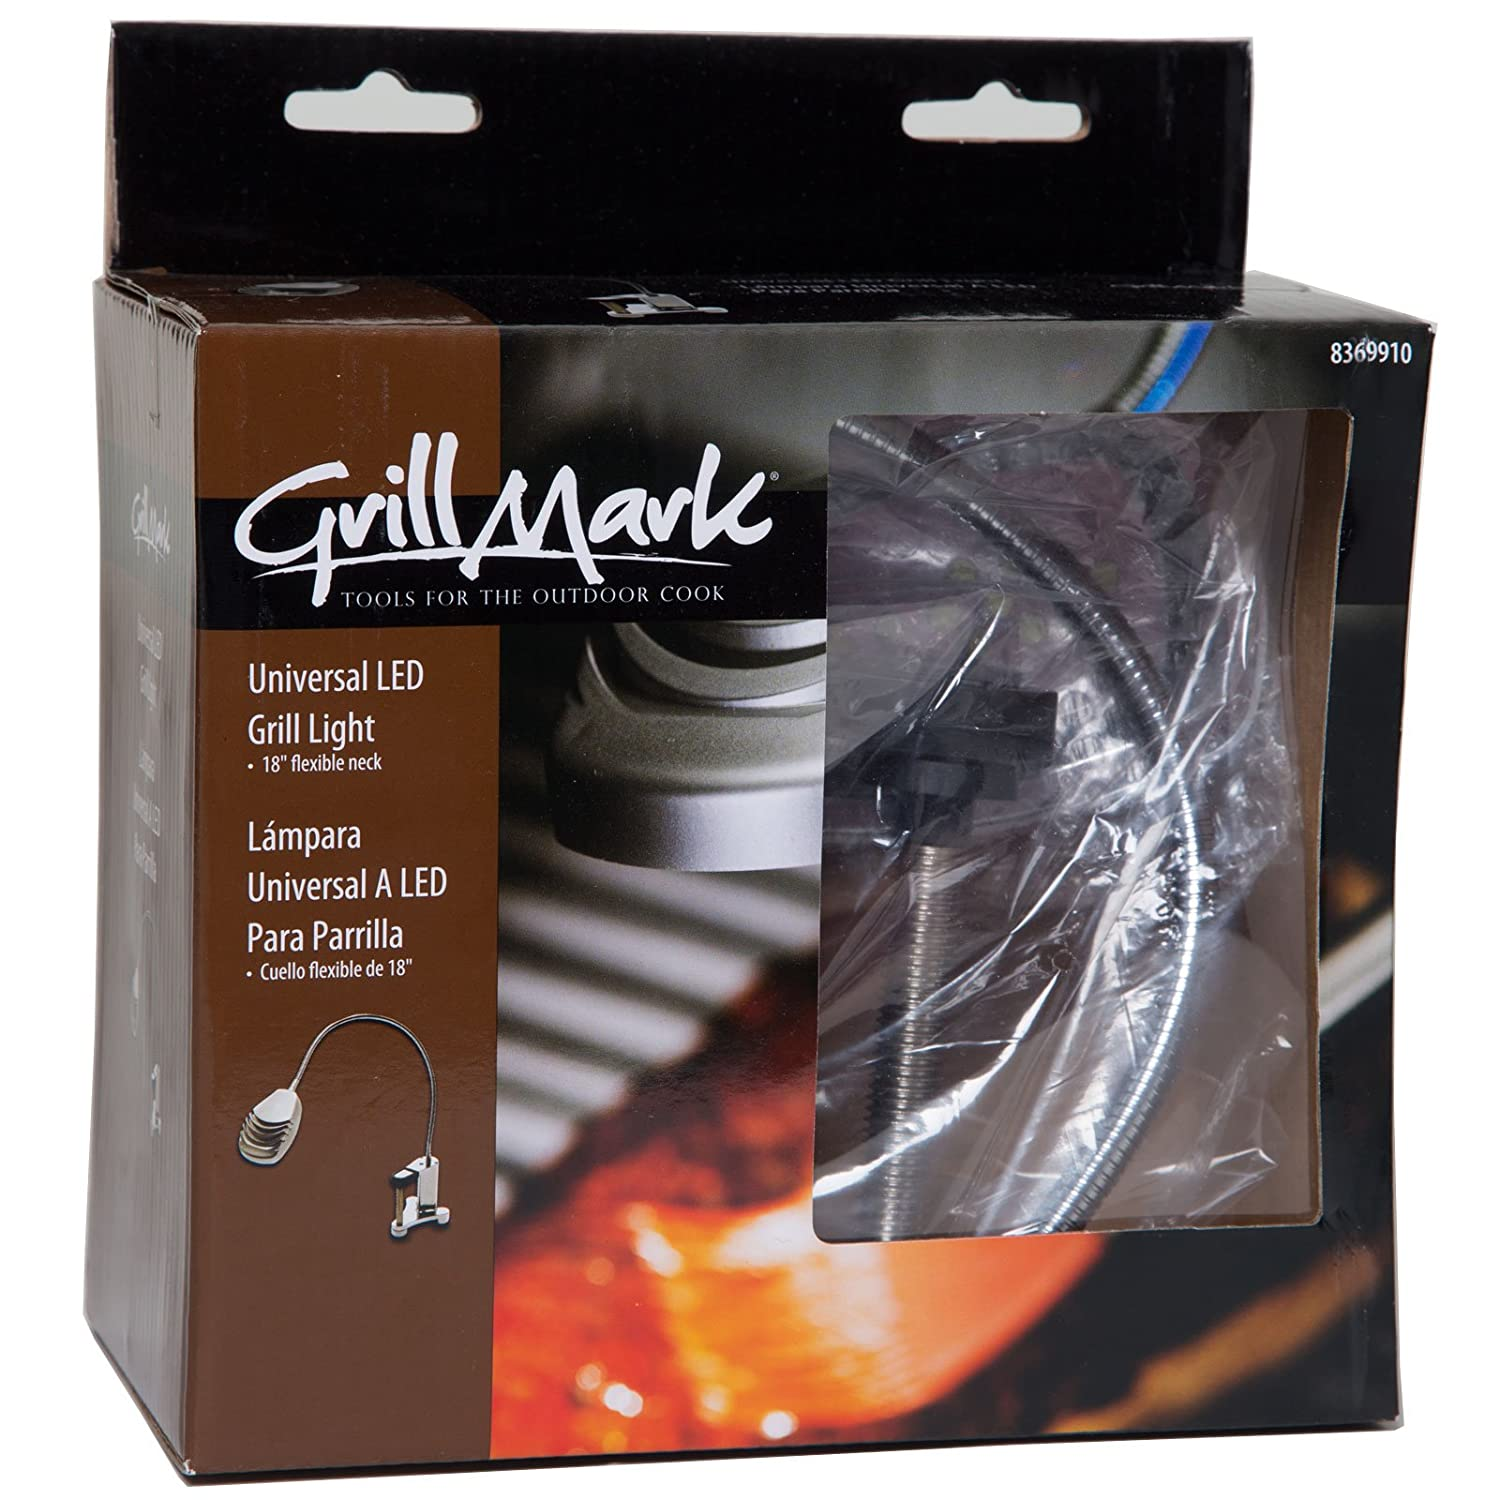 Grill Mark 50939A Univeral LED Grill Light 18-Inch Flexible Neck